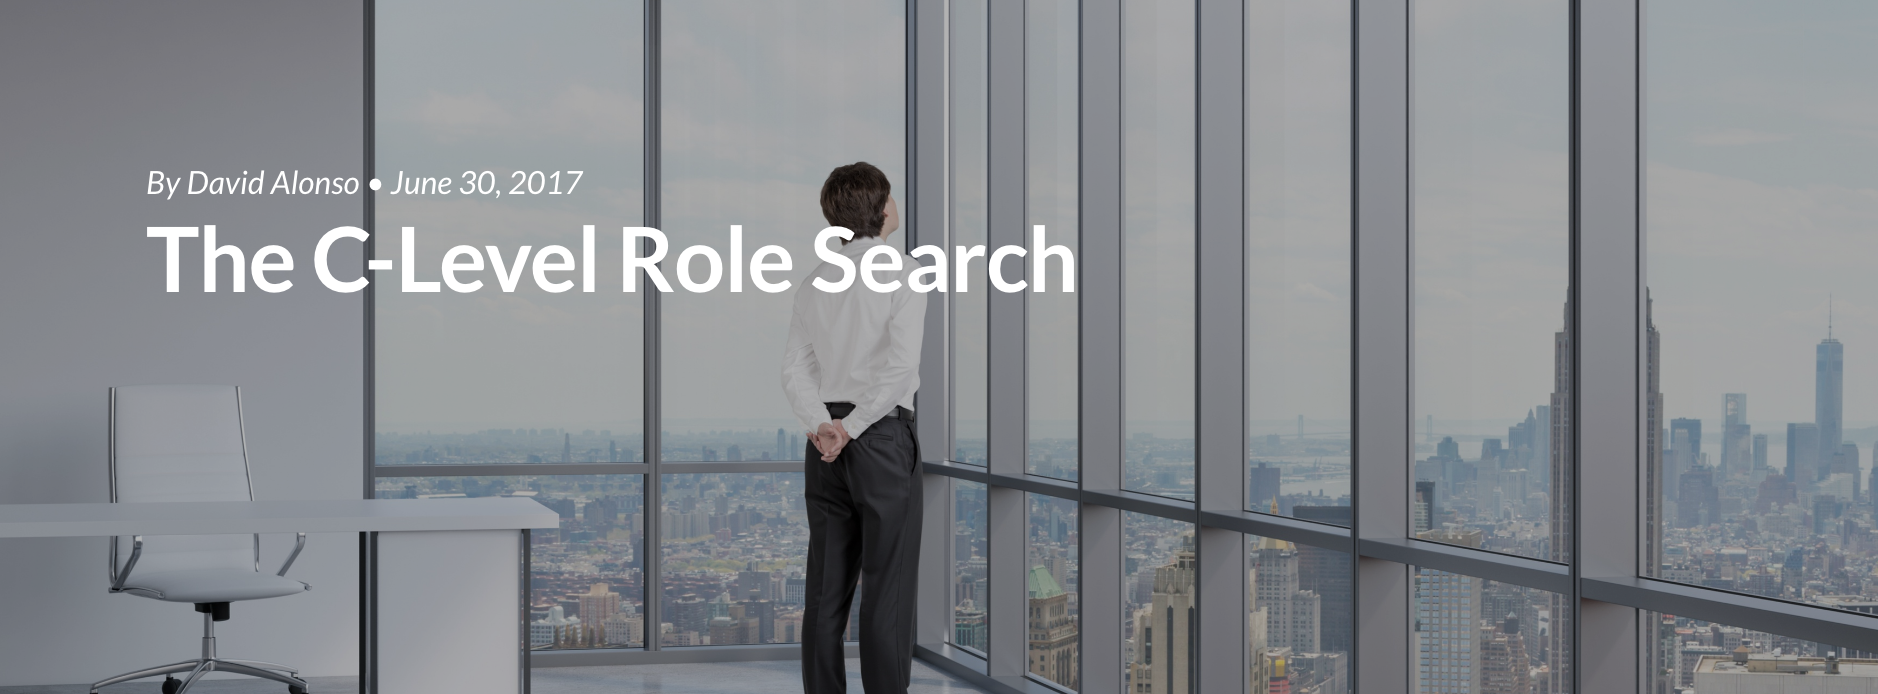 The C-Level Role Search